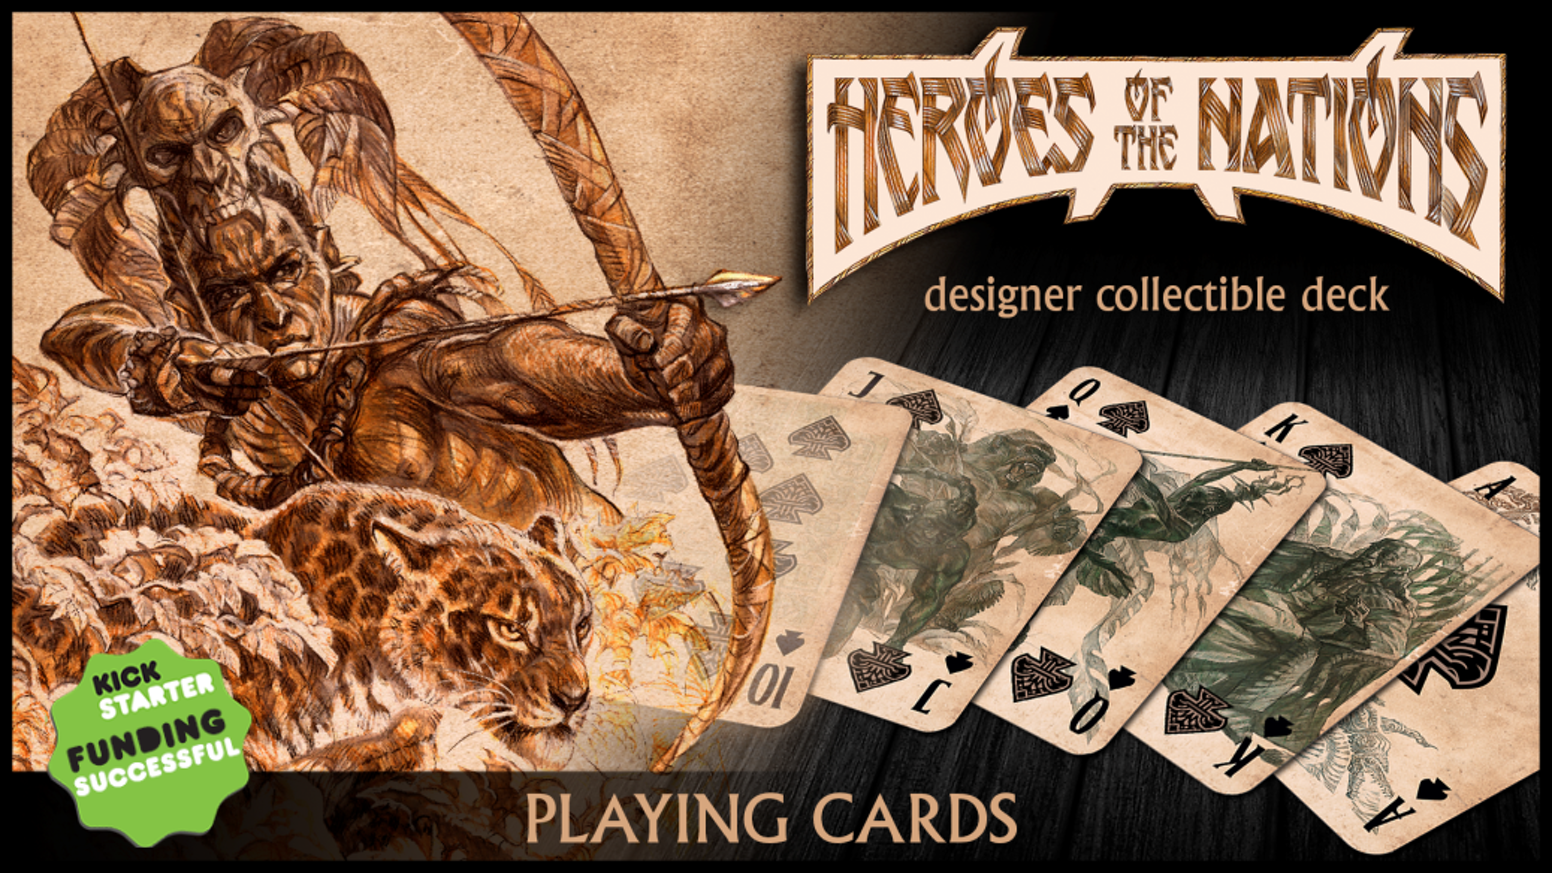 Playing cards inspired by the fantasy genre – modern masterpiece. Hand-made by our artist, printed by USPCC